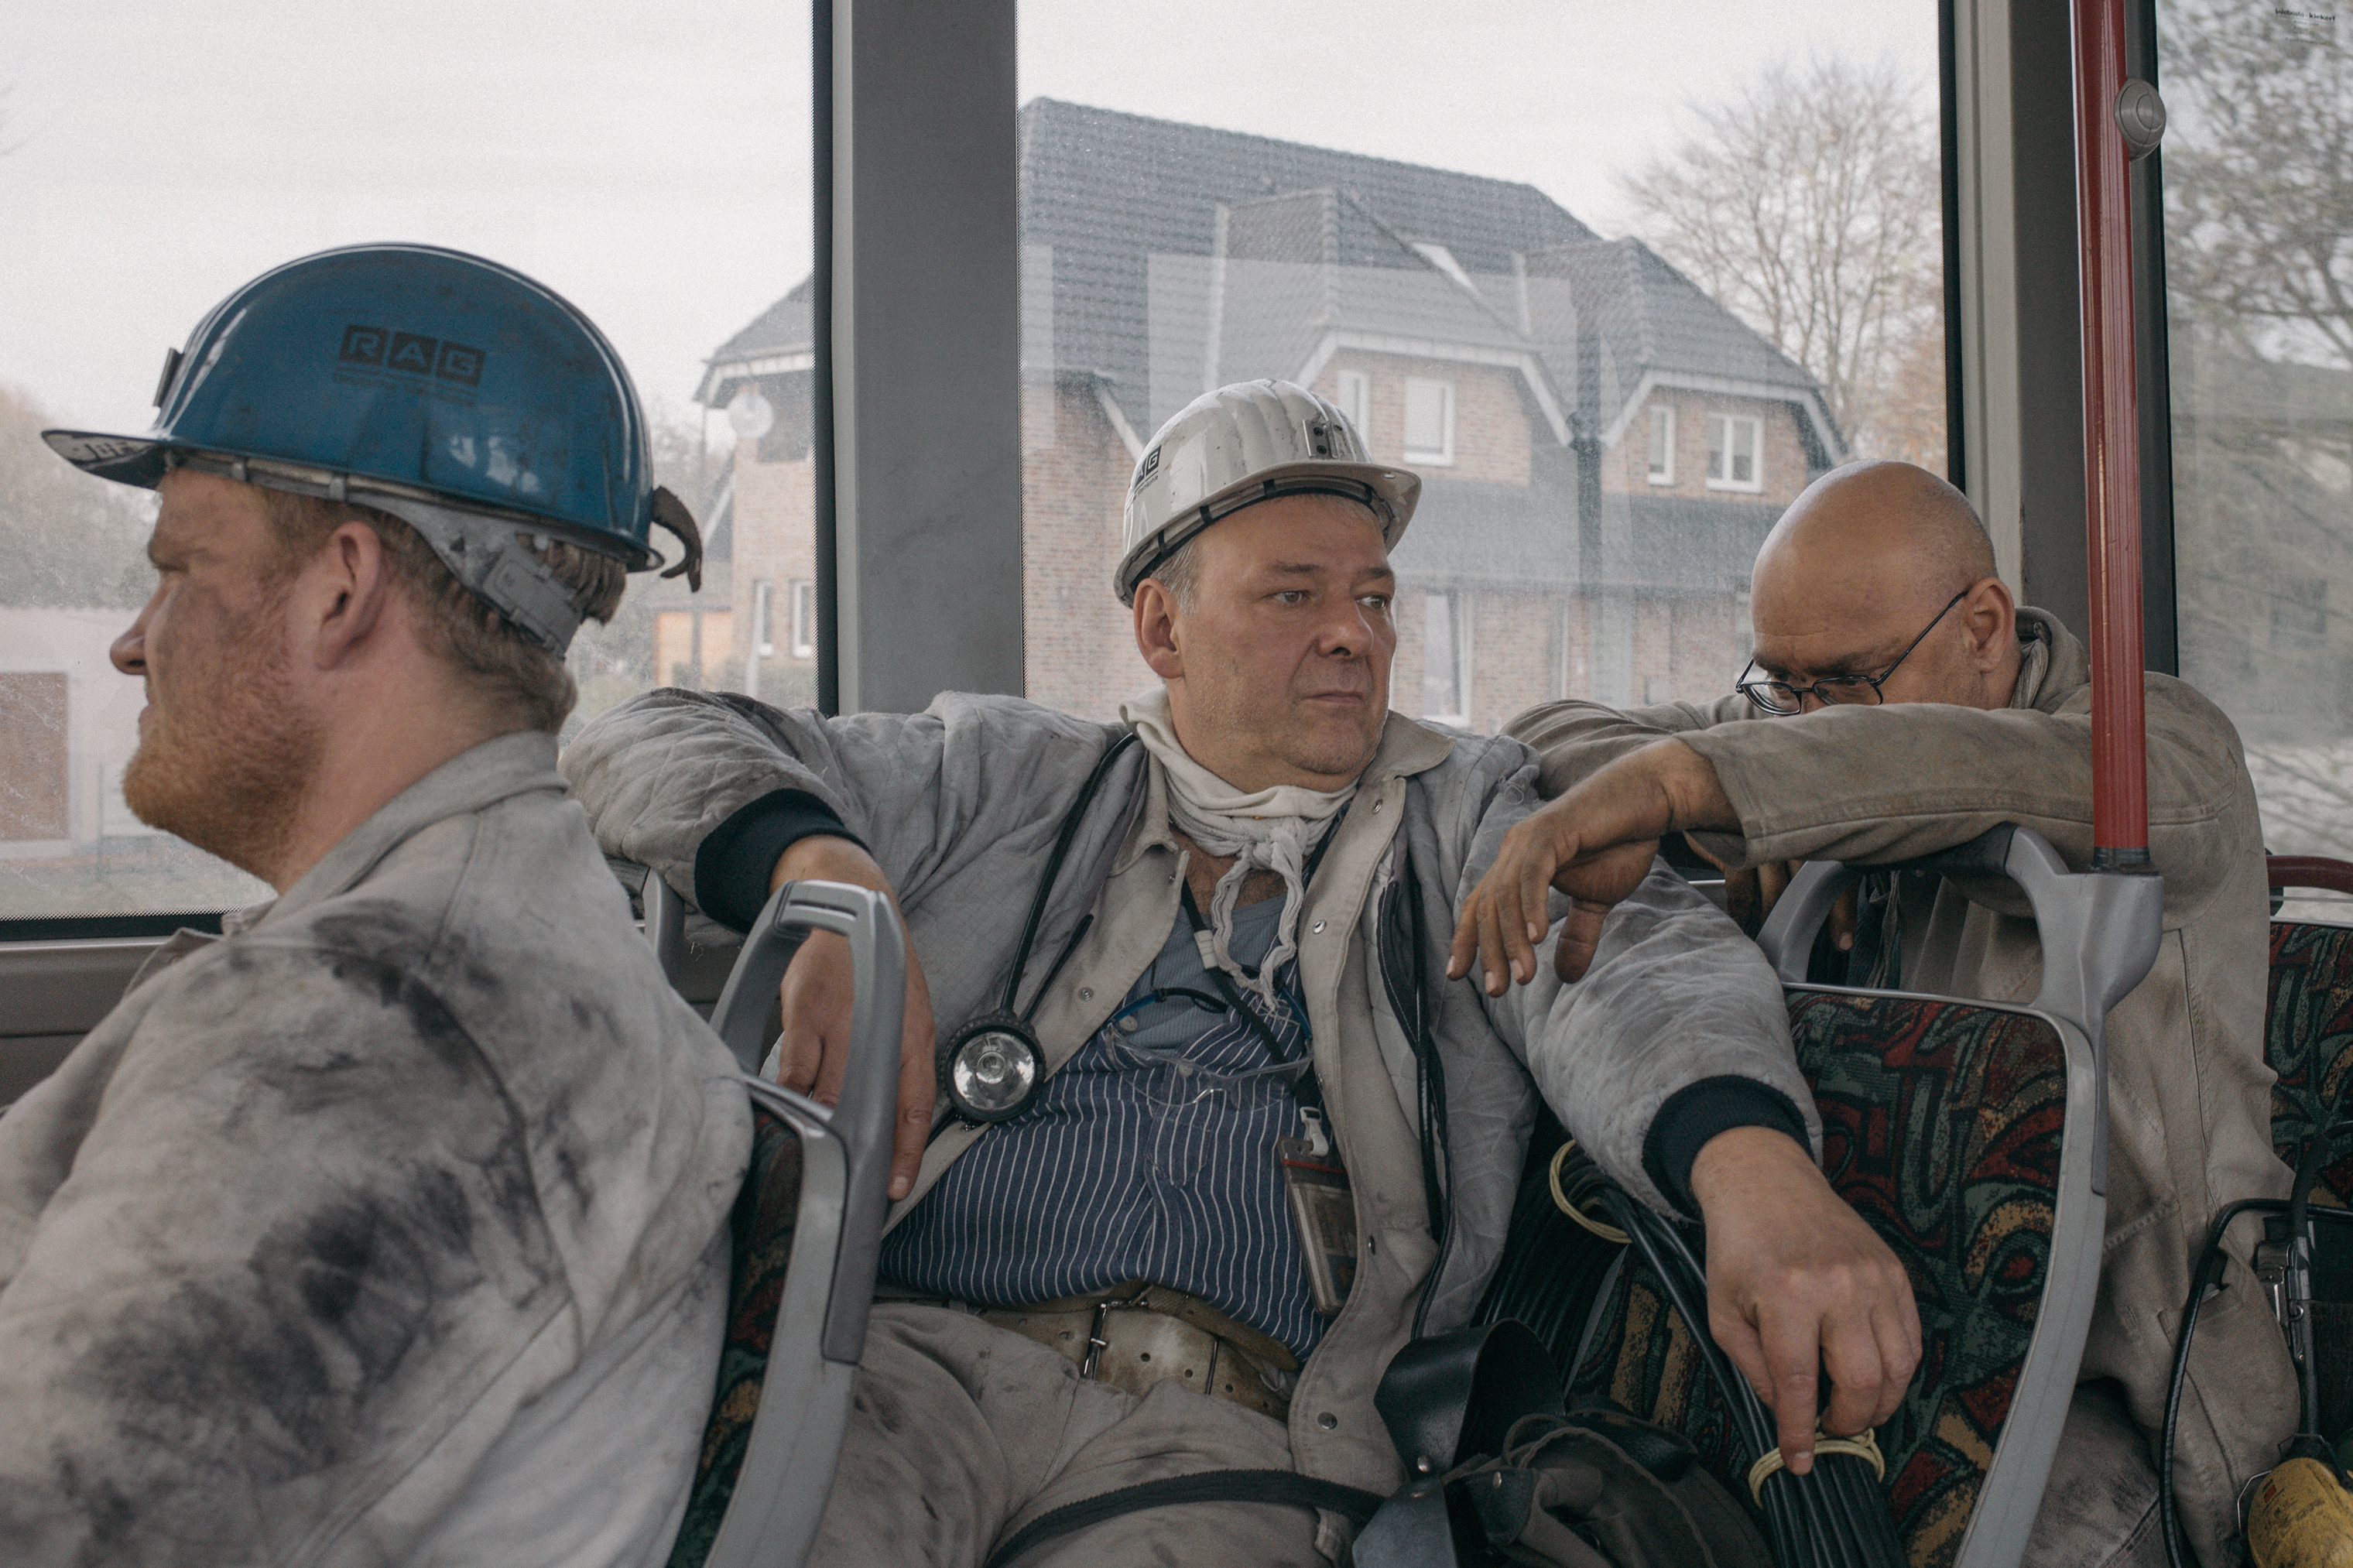 After an eight-hour shift, miners are transported to the baths to clean up in November 2017. The Prosper-Haniel mine in western Bottrop will be officially closed on Dec. 21.